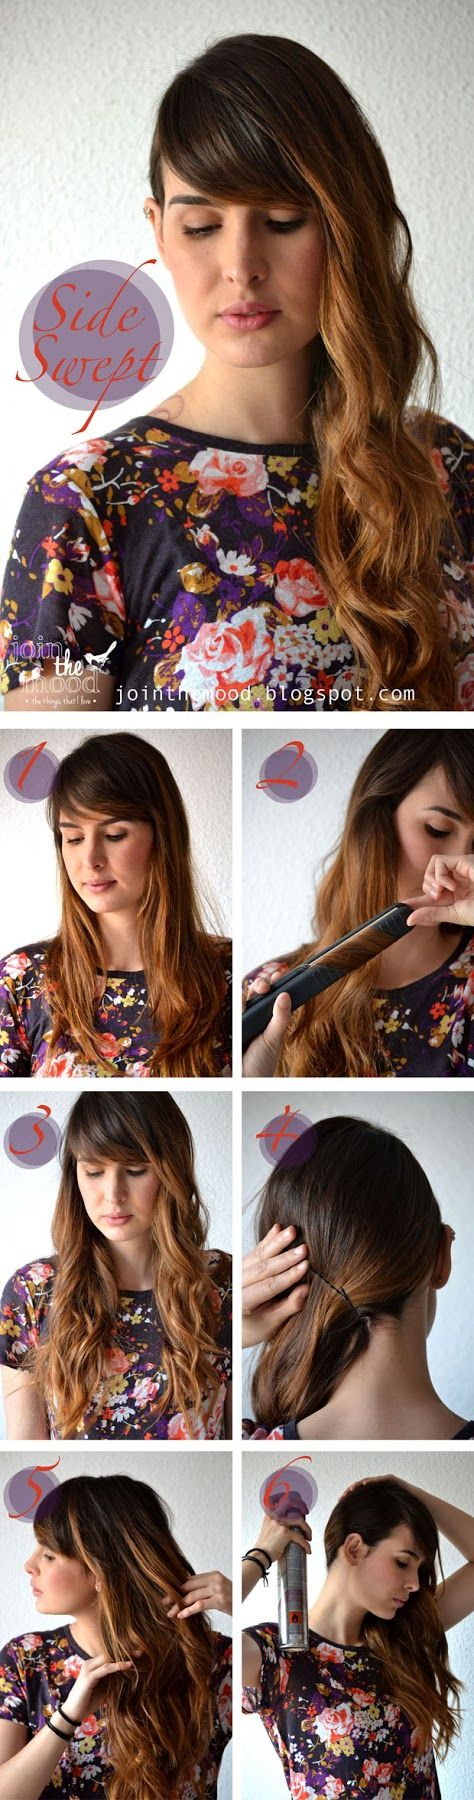 23 Great Elegant Hairstyles Ideas and Tutorials (1)